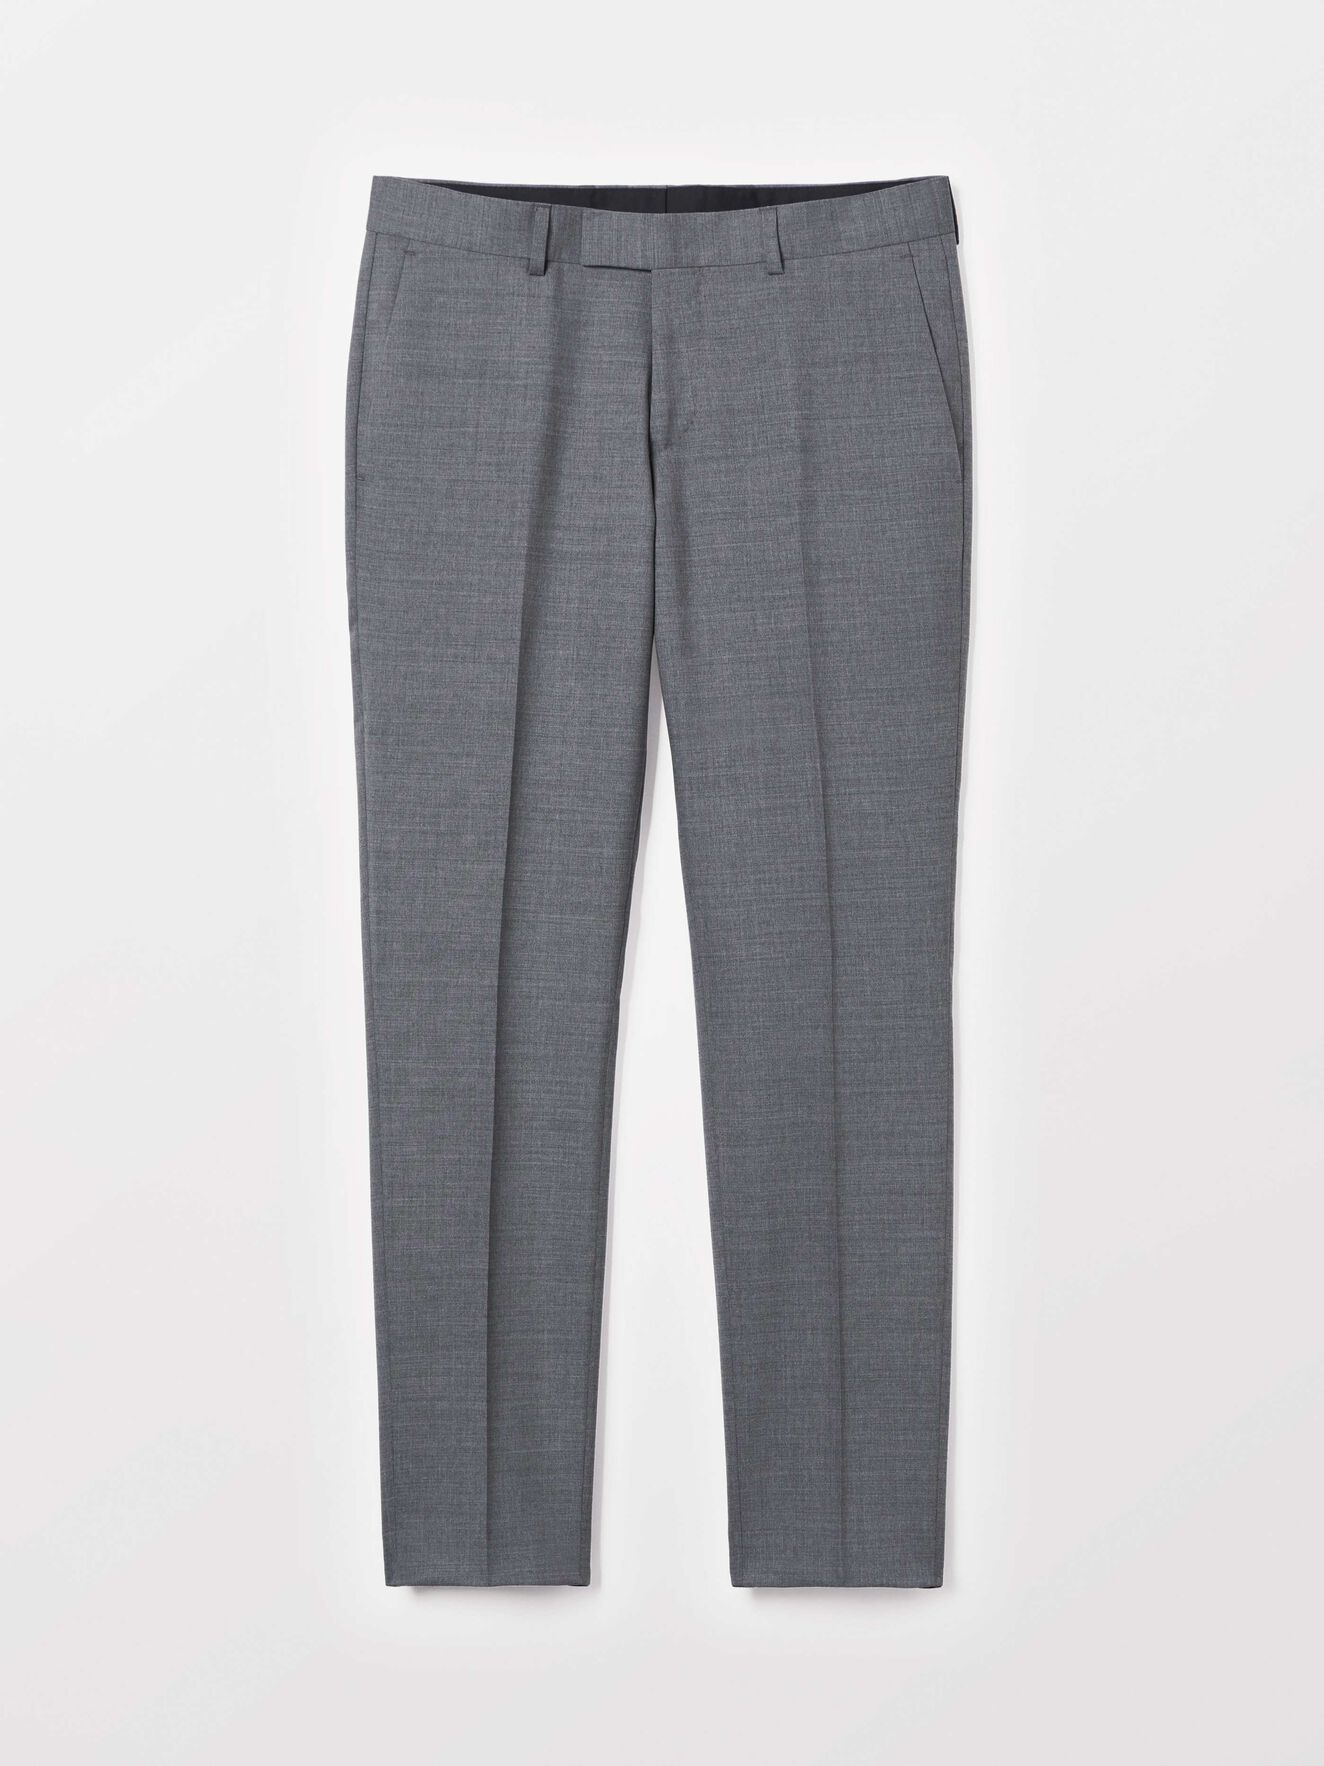 Tordon Trousers in Night life from Tiger of Sweden